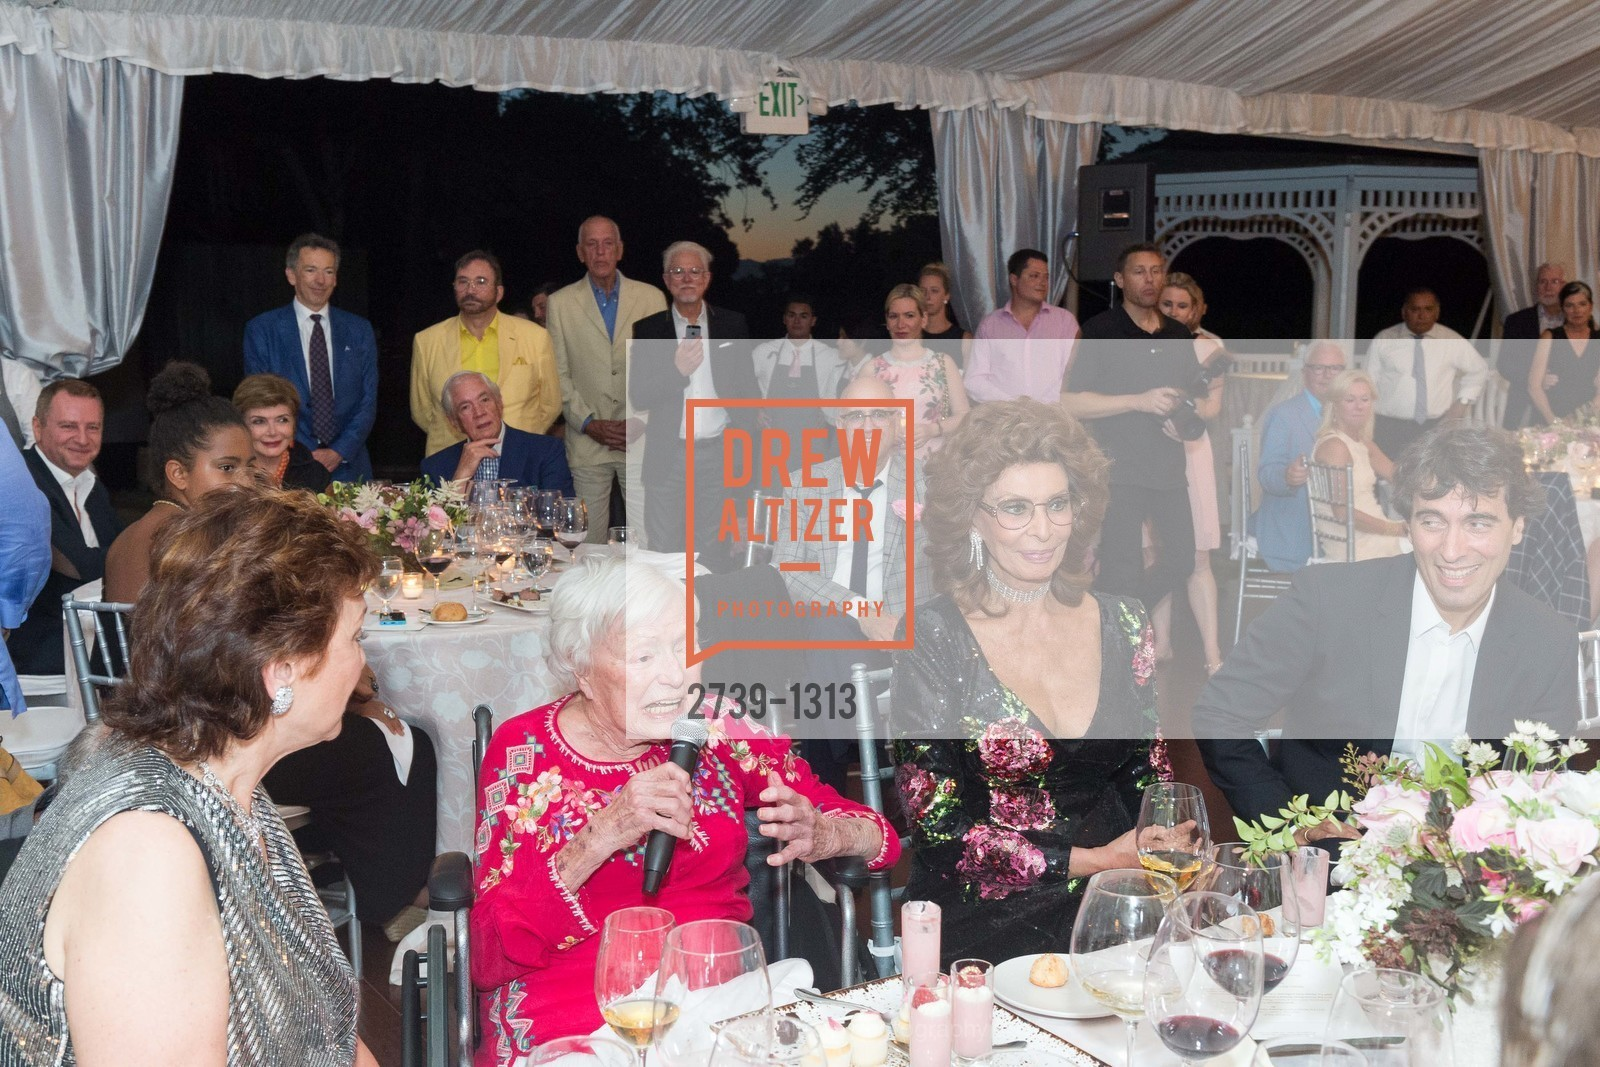 Maria Manetti Shrem, Margrit Mondavi, Sophia Loren, Carlo Ponti, Photo #2739-1313